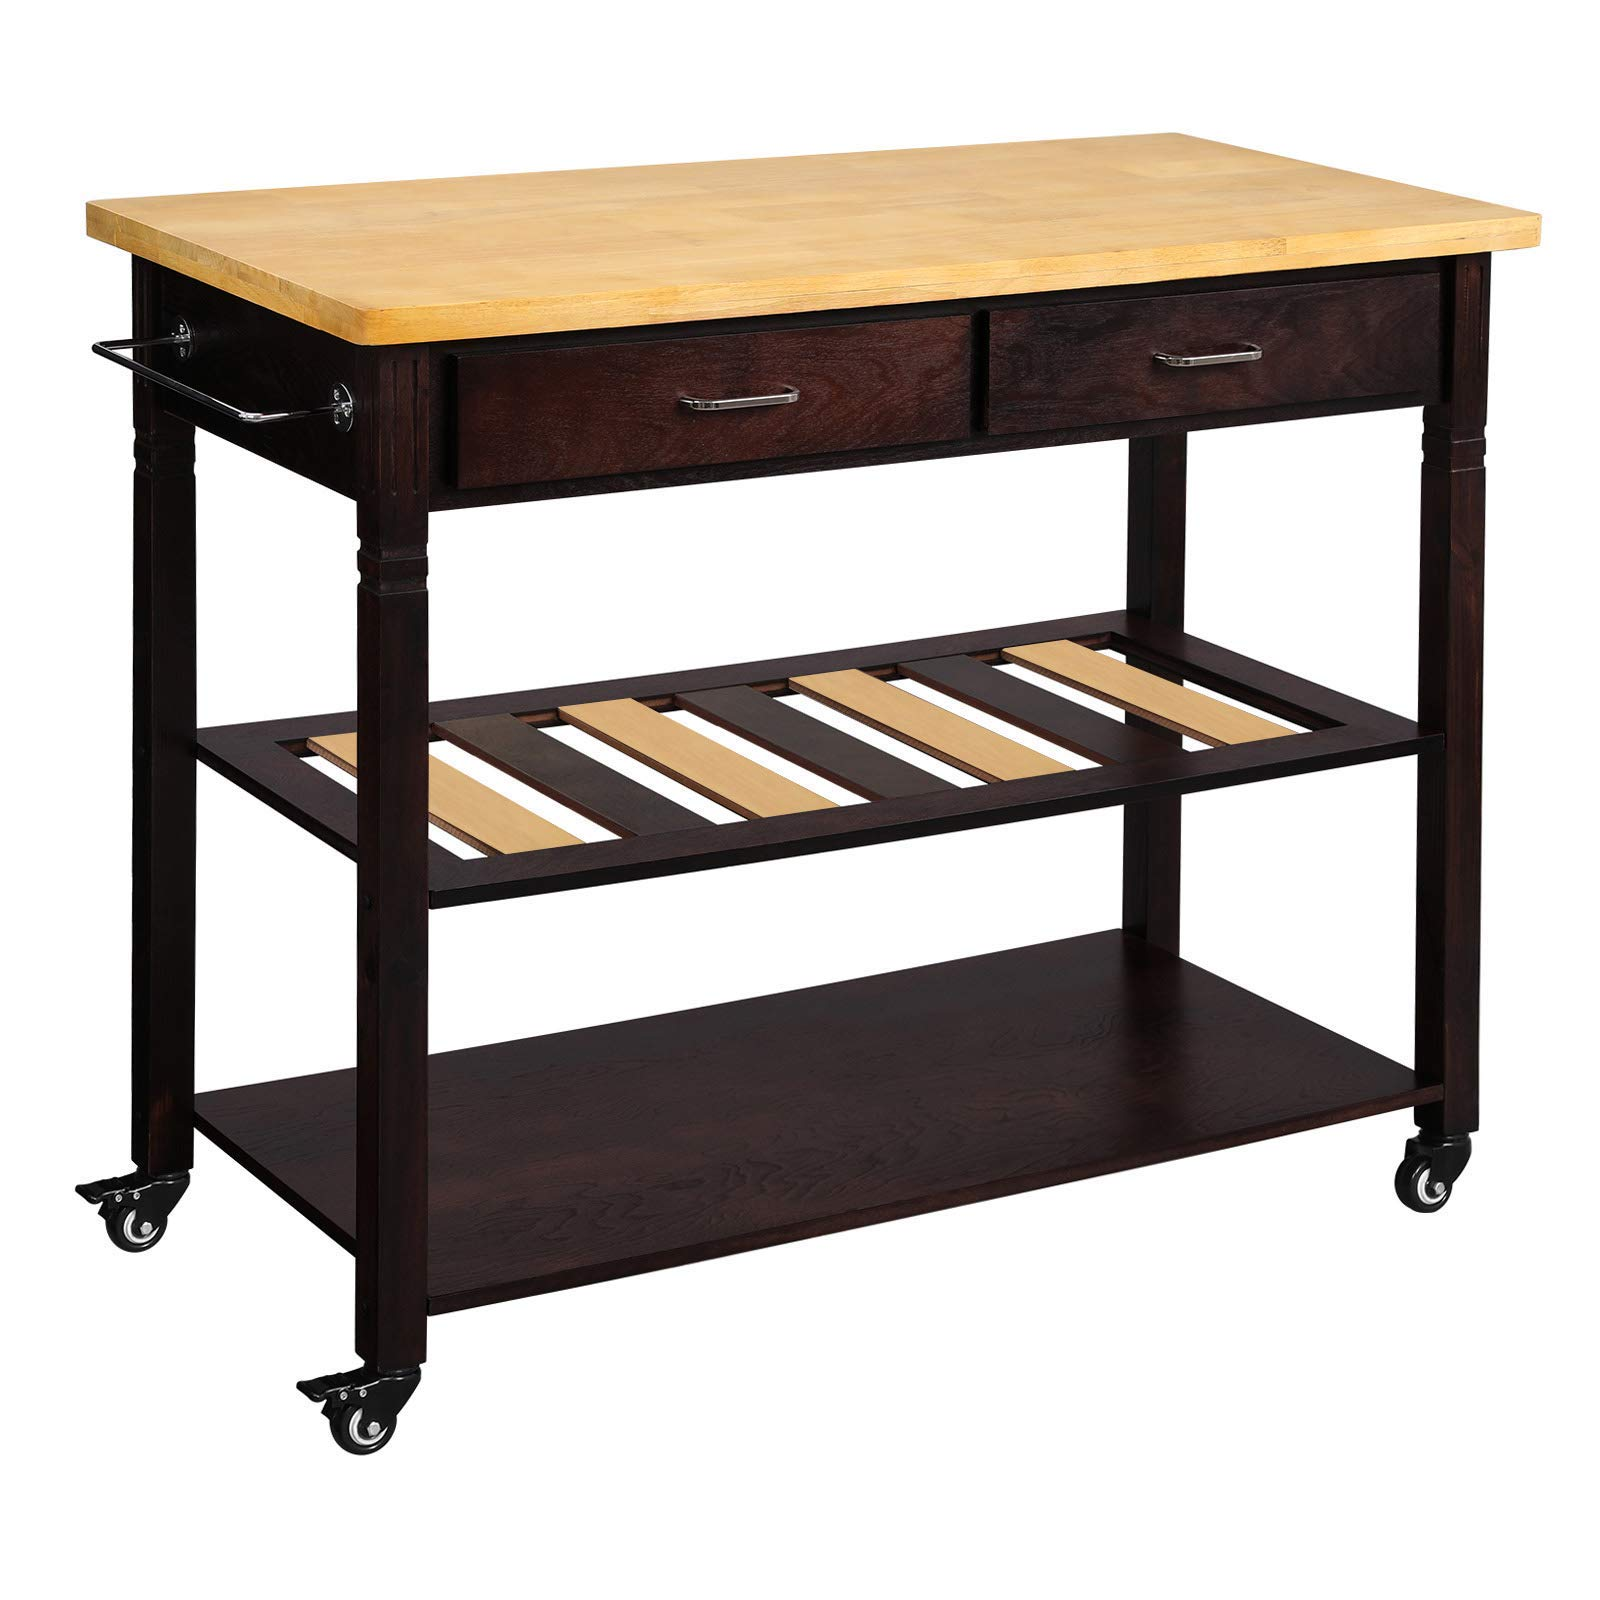 VASAGLE Kitchen Island on Wheels, 3-Tier Rolling Kitchen Cart with 2 Drawers and 1 Towel Rack, Utility Cart with Rubberwood Table, Sturdy, Easy Assembly, Rustic Style, Maple and Dark Walnut UKKC02CY